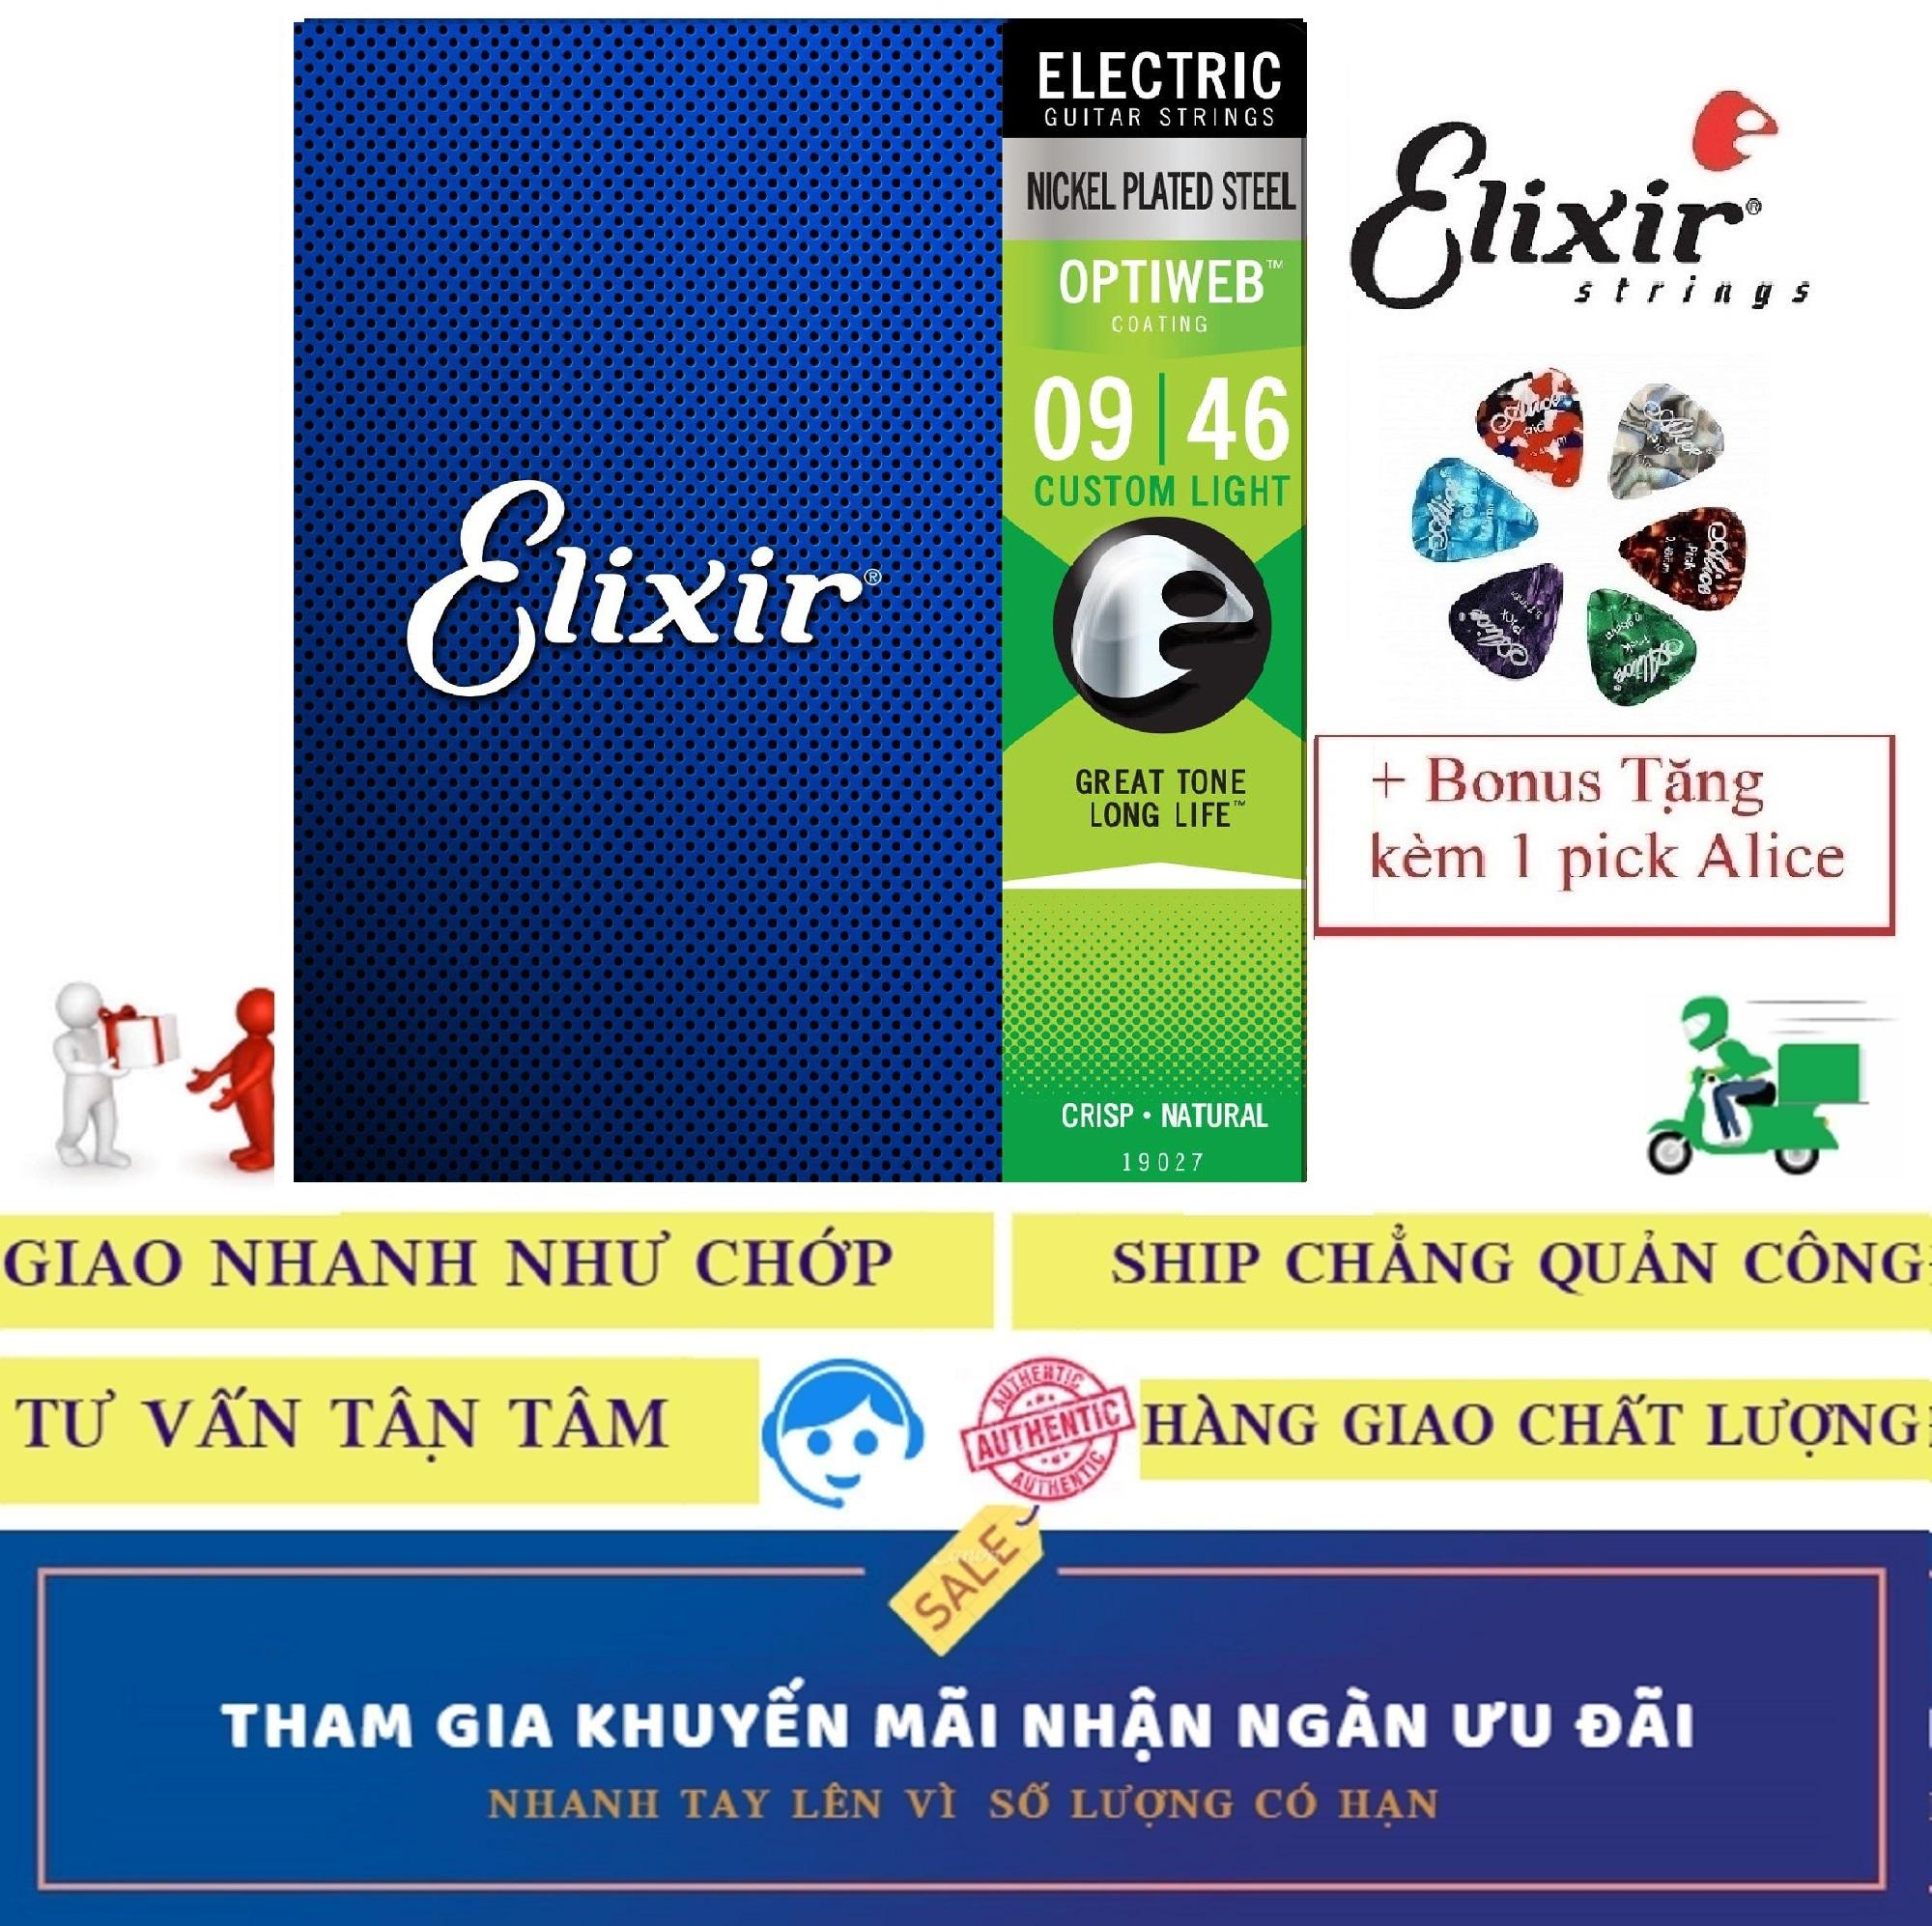 Bộ Dây Đàn Elixir cao cấp 19027 (Cỡ 9 - Custom Light) Electric Guitar điện Nickel Plated Steel With OPTIWEB COATING Strings